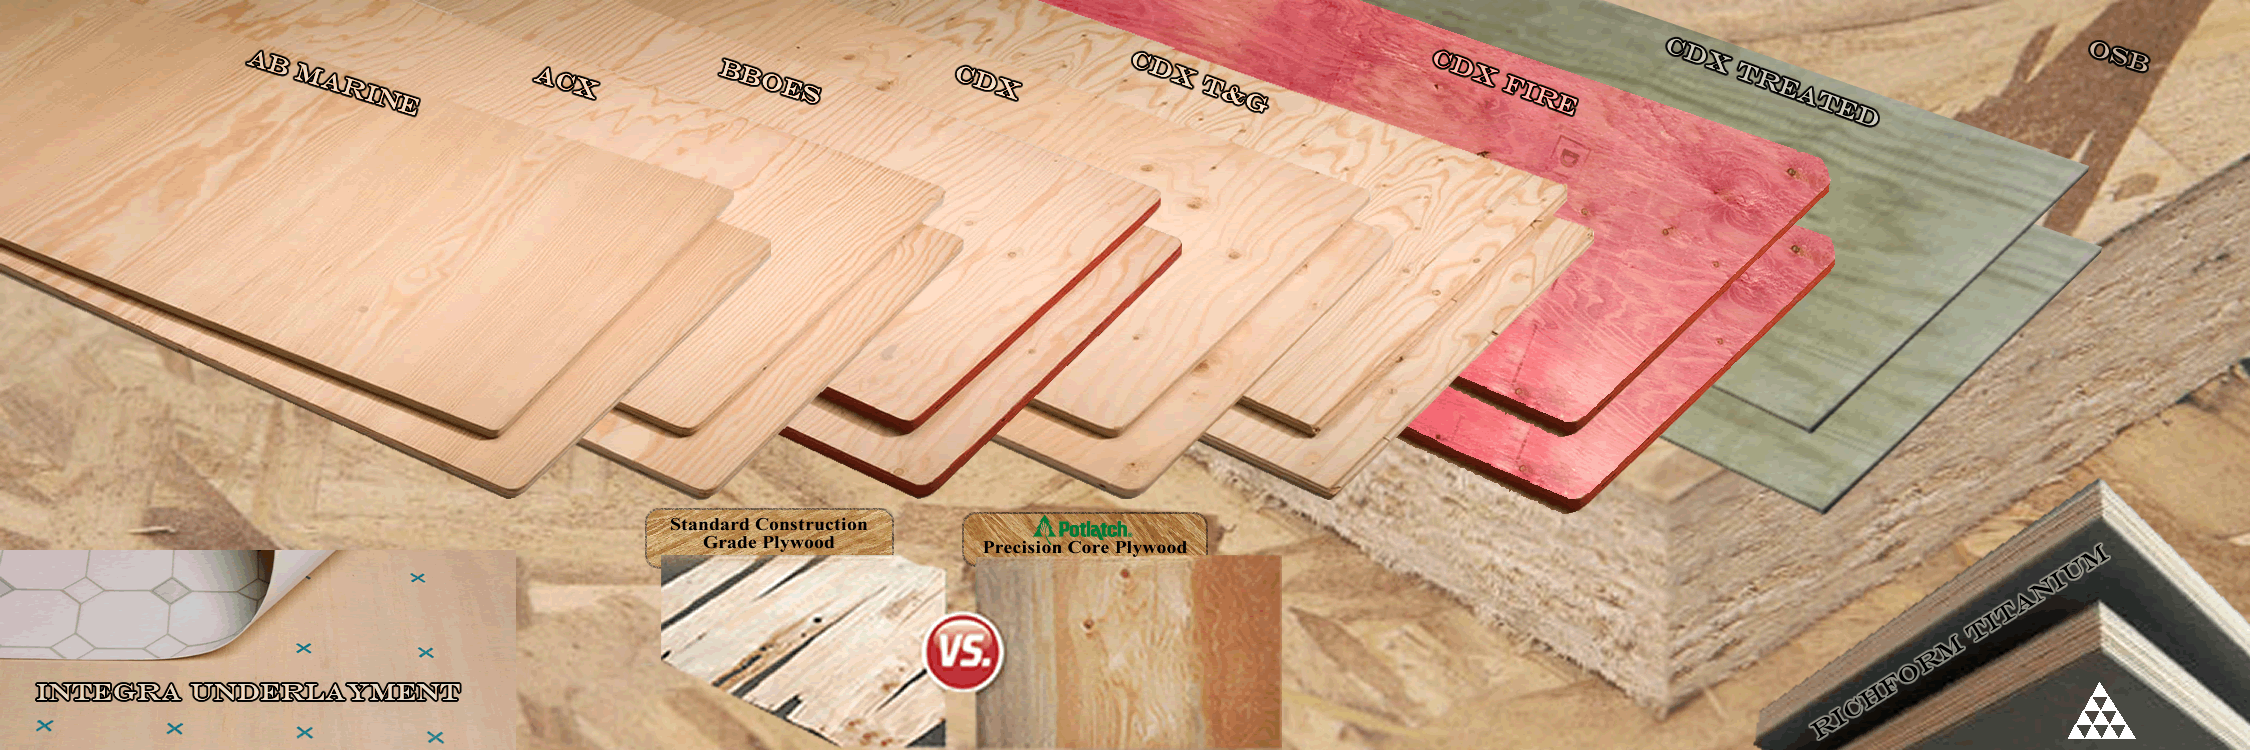 osb background with images of different plywood types